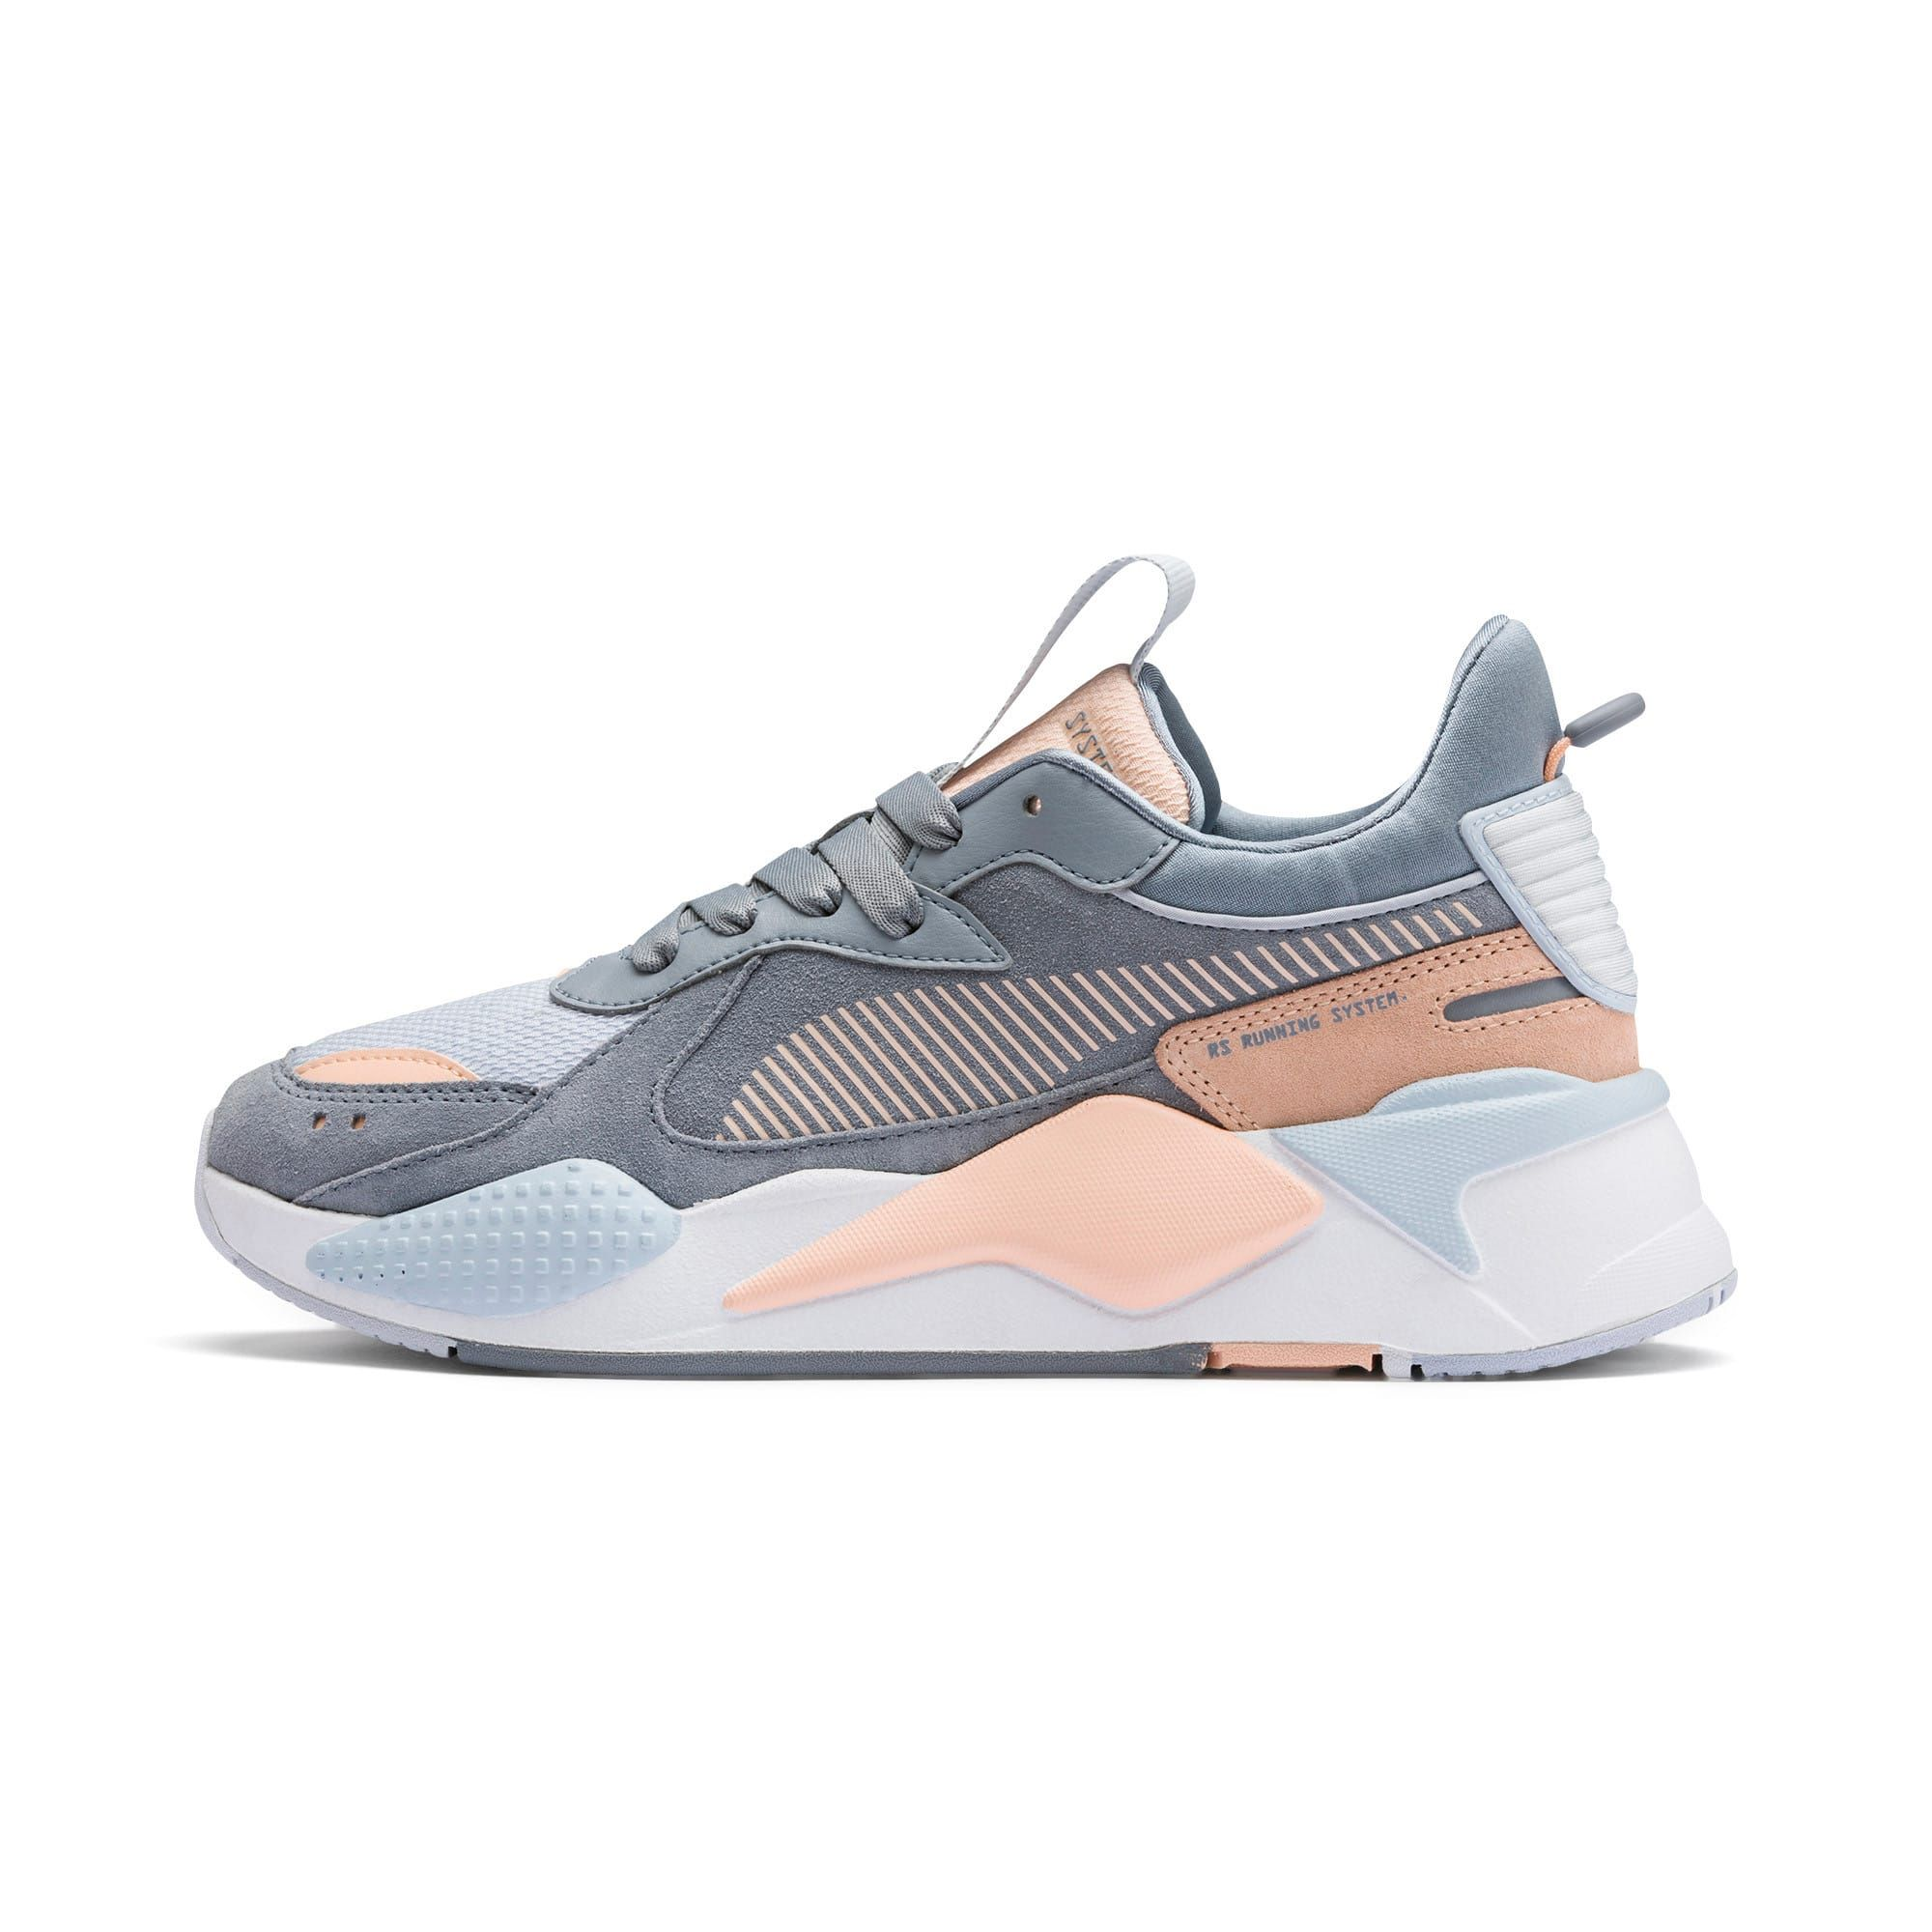 Puma RS X Reinvent trainers in beige